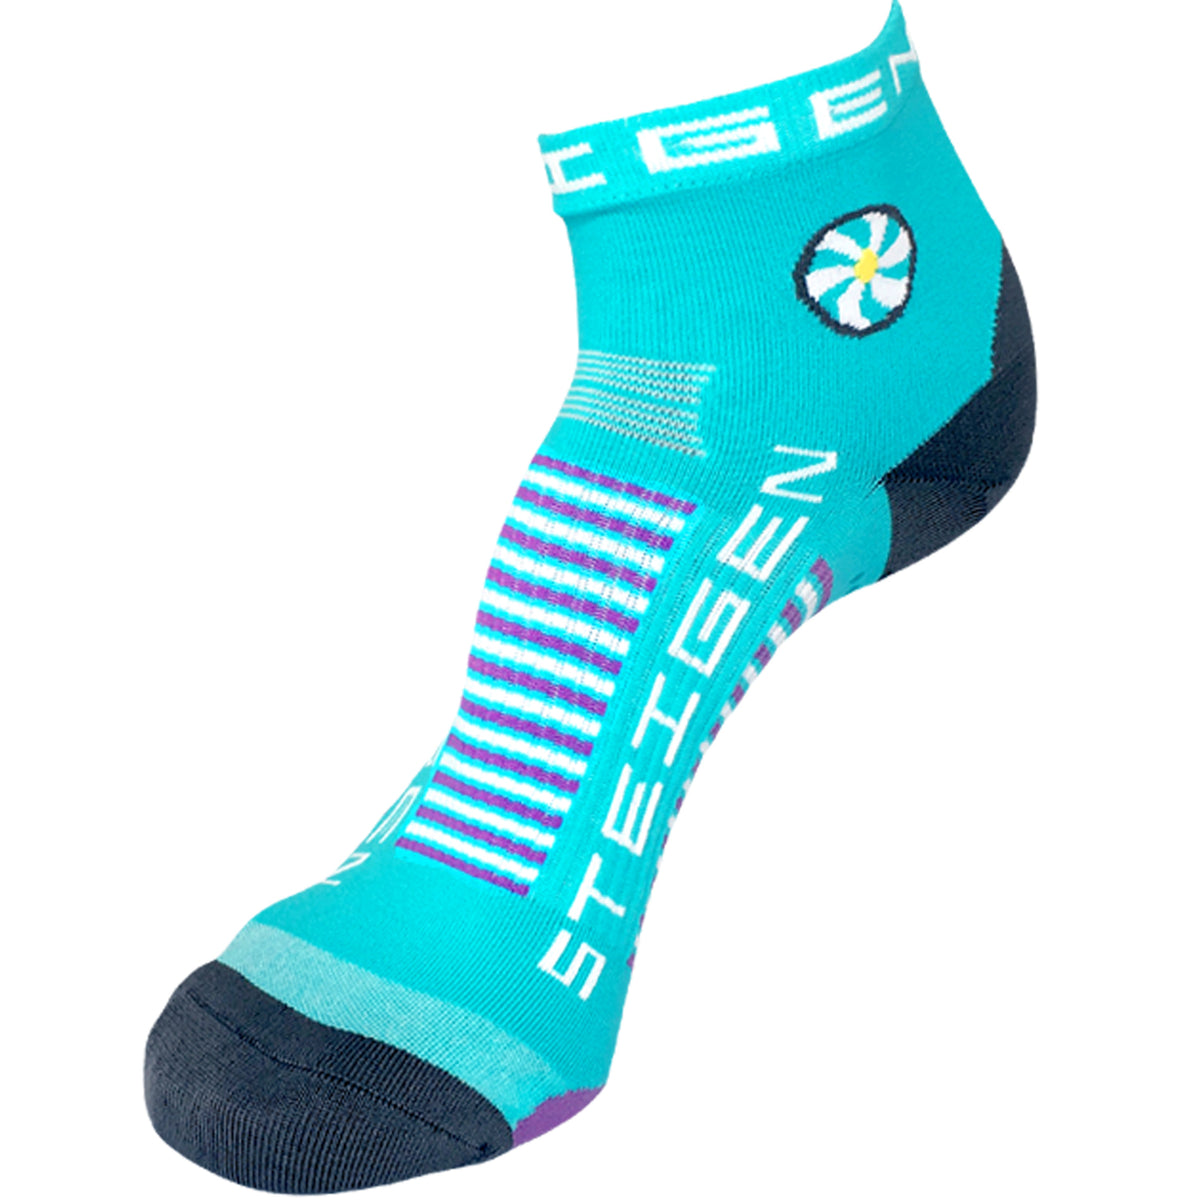 Steigen Pilates Socks - Blue/White